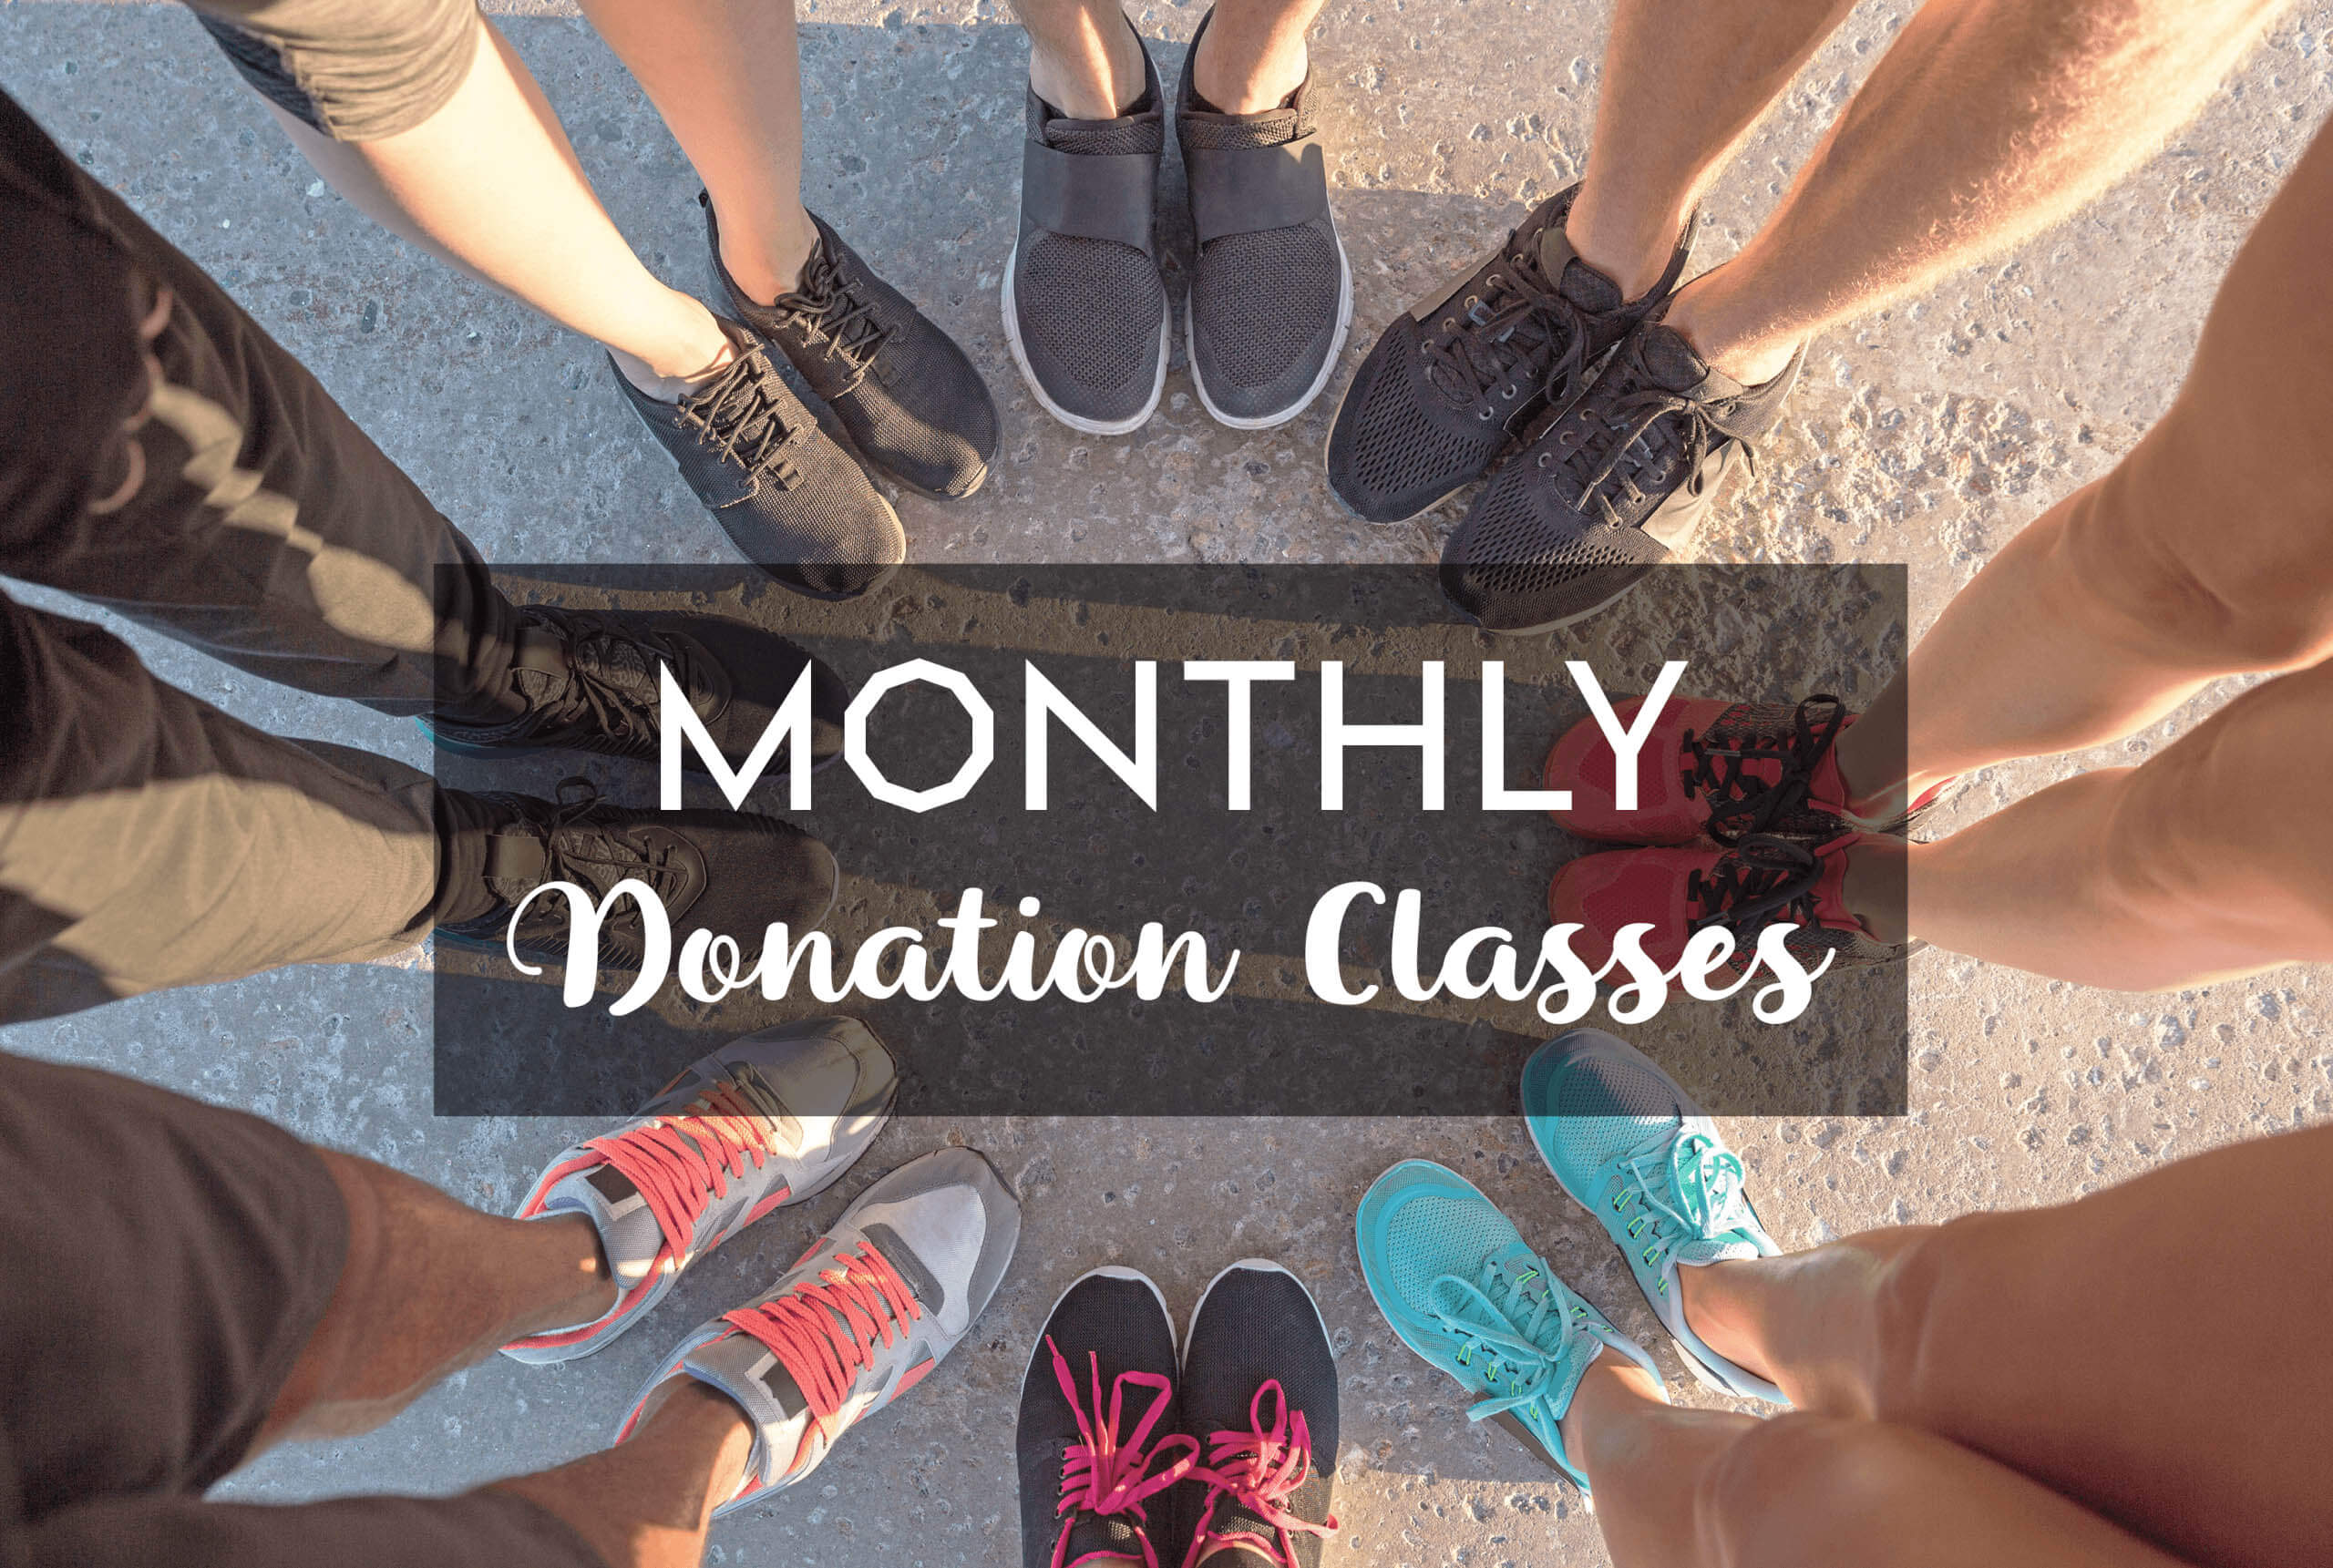 Donation Classes for Breast Cancer Resource Center